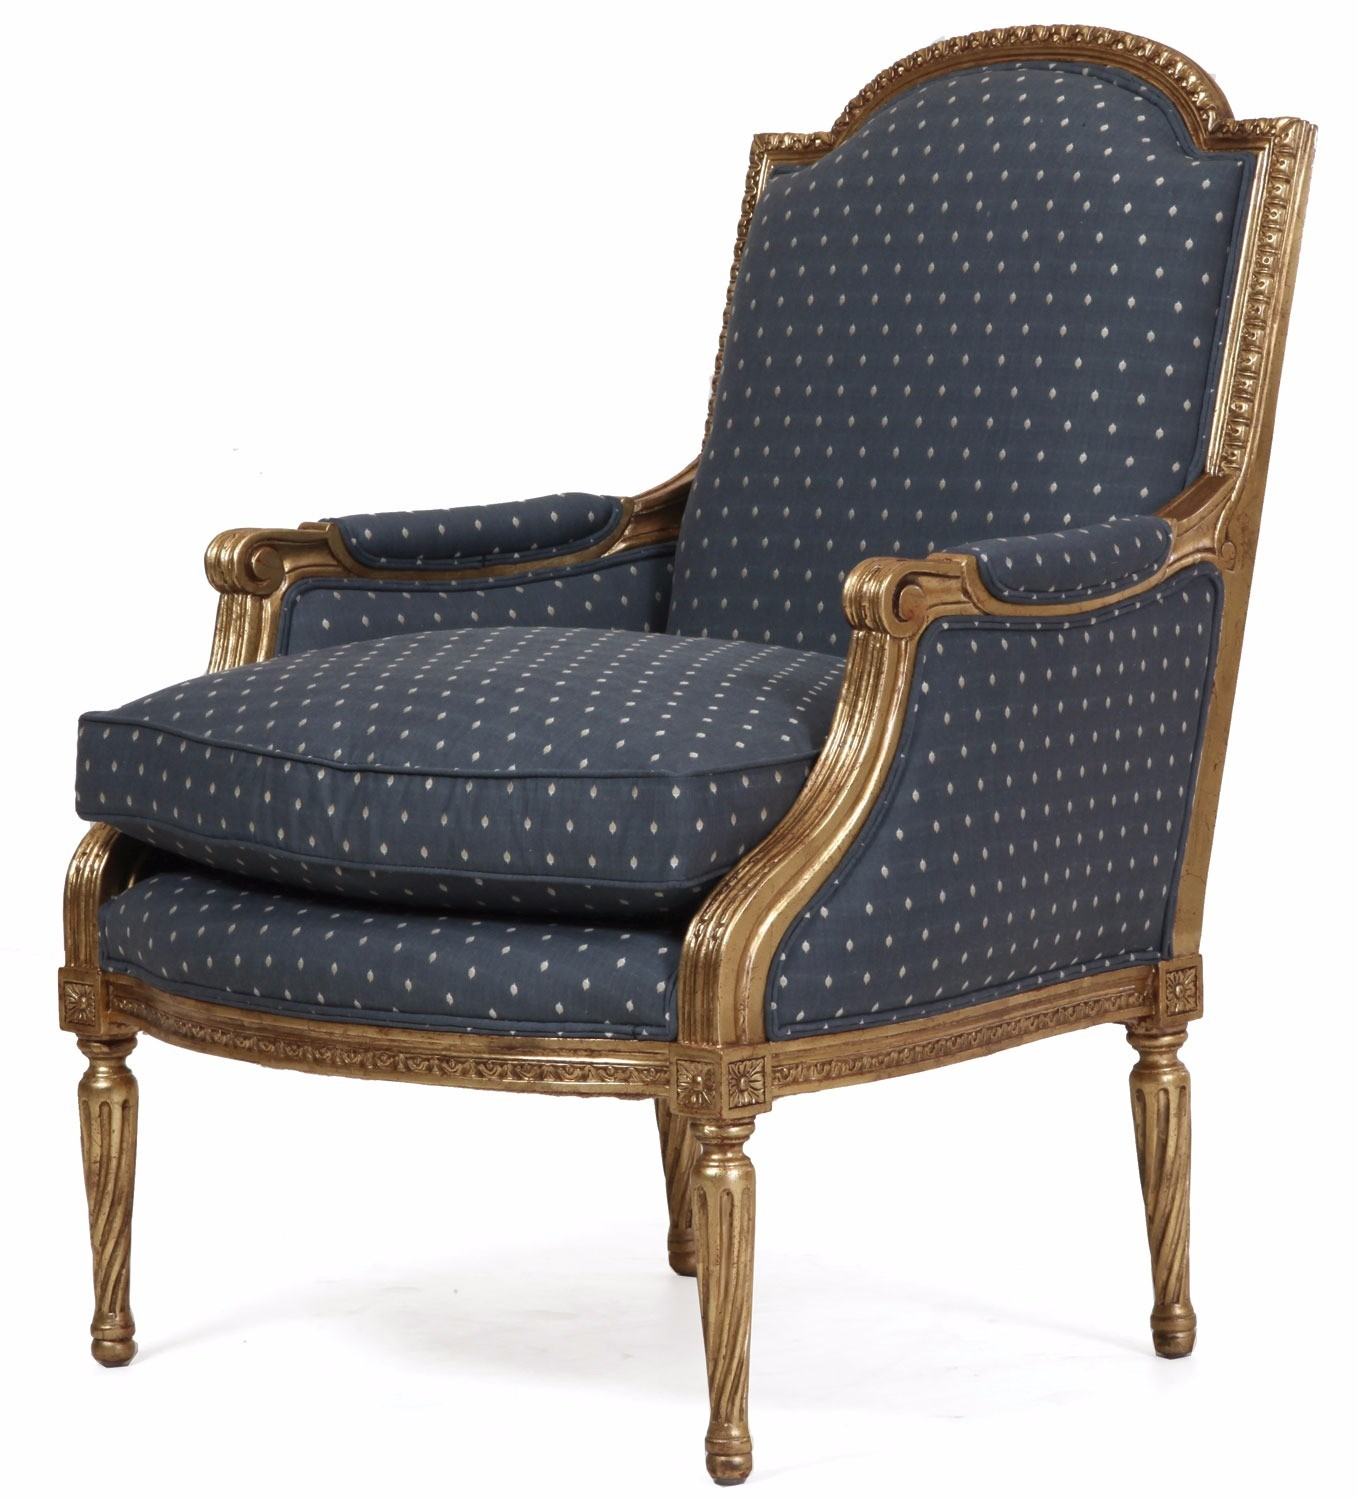 Replica French gilded Alexander chair